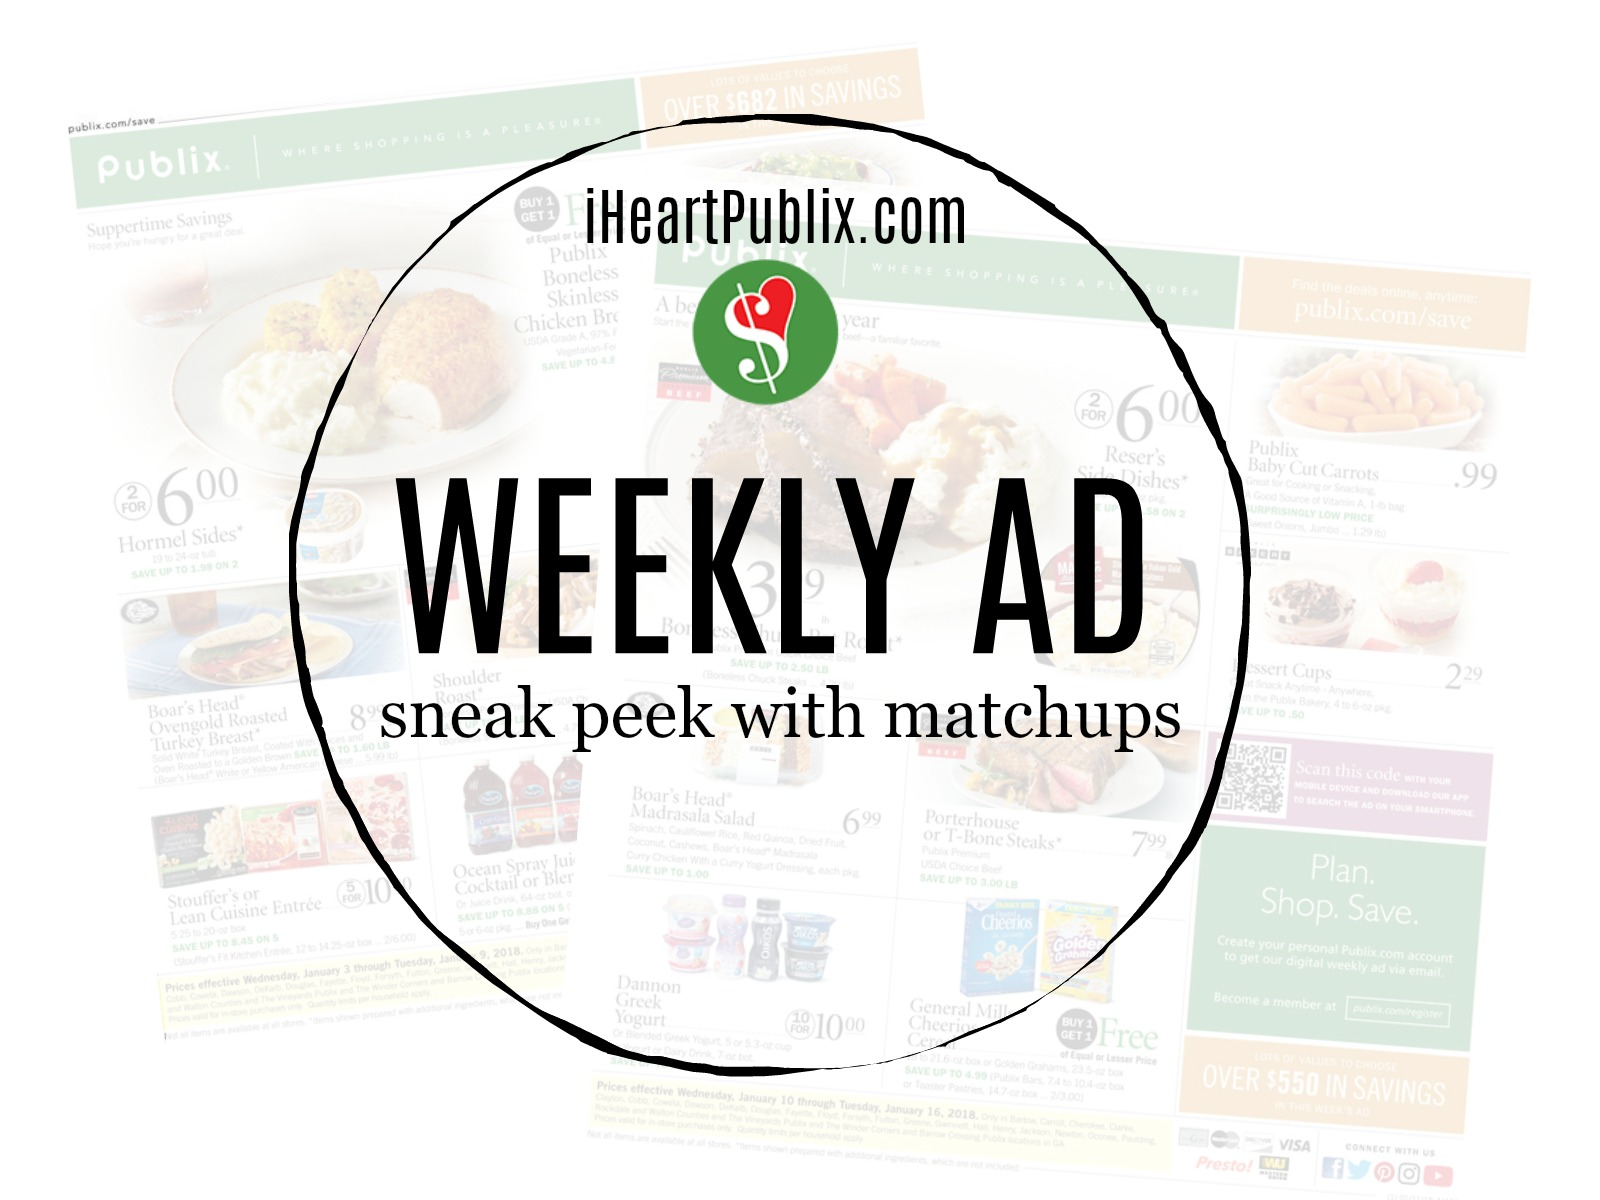 Publix Ad & Coupons Week Of 4/22 - 4/24 (4/22 - 4/23 For Some) - SHORT AD